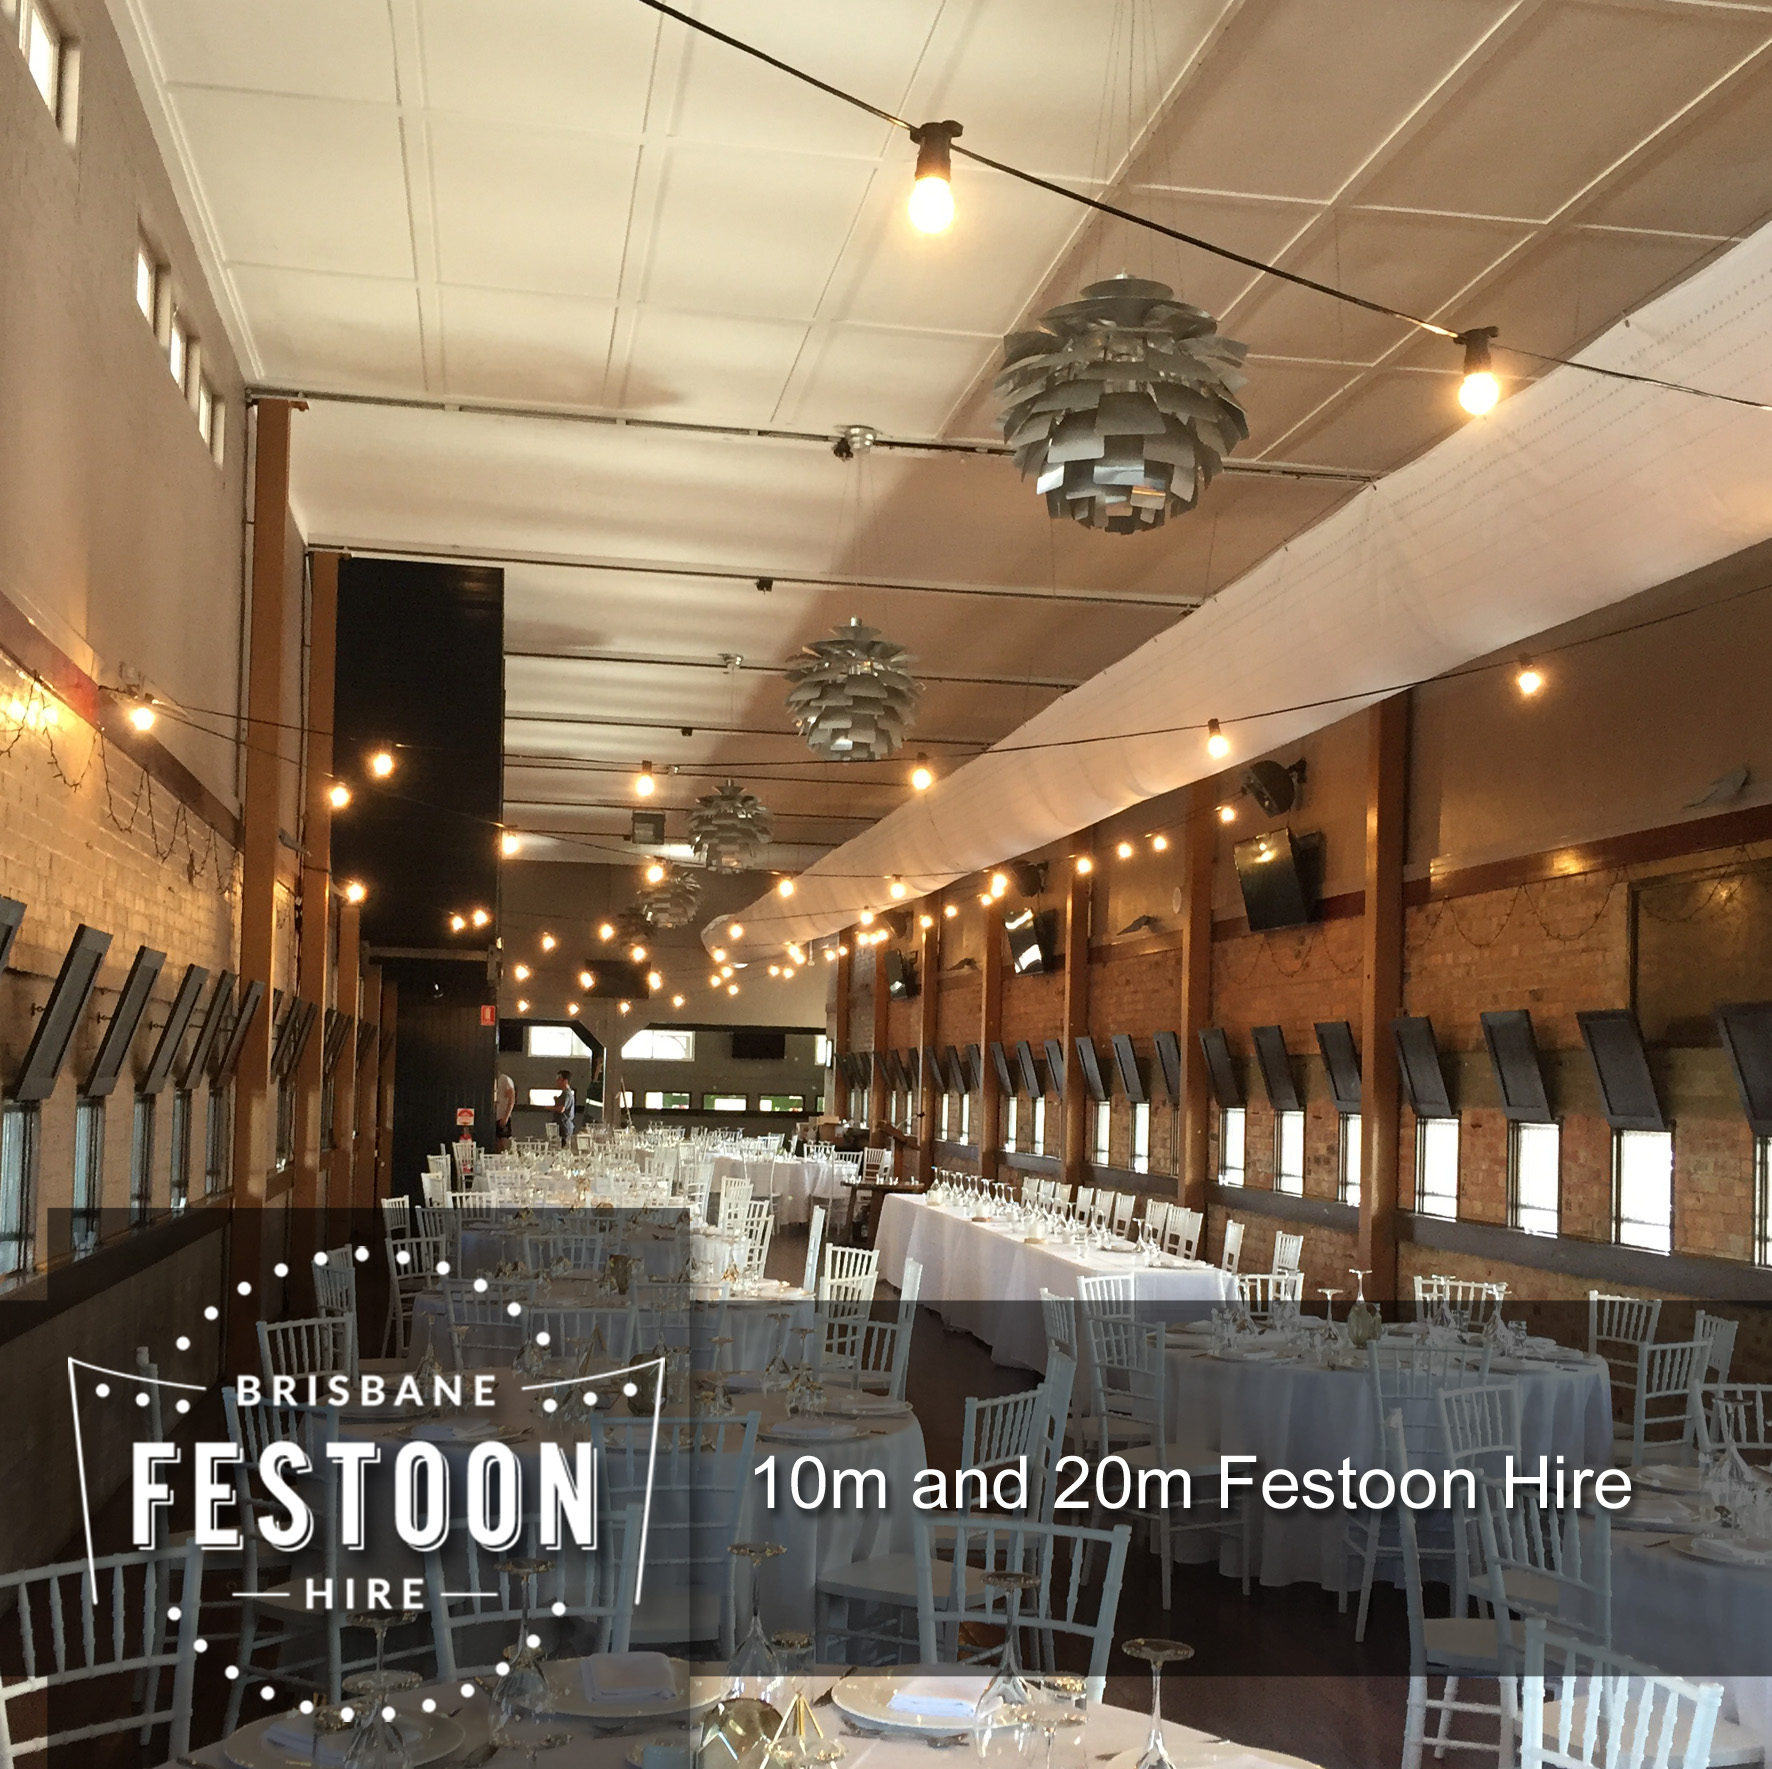 Brisbane Festoon Hire - 10m and 20m Festoon Hire 4.jpg